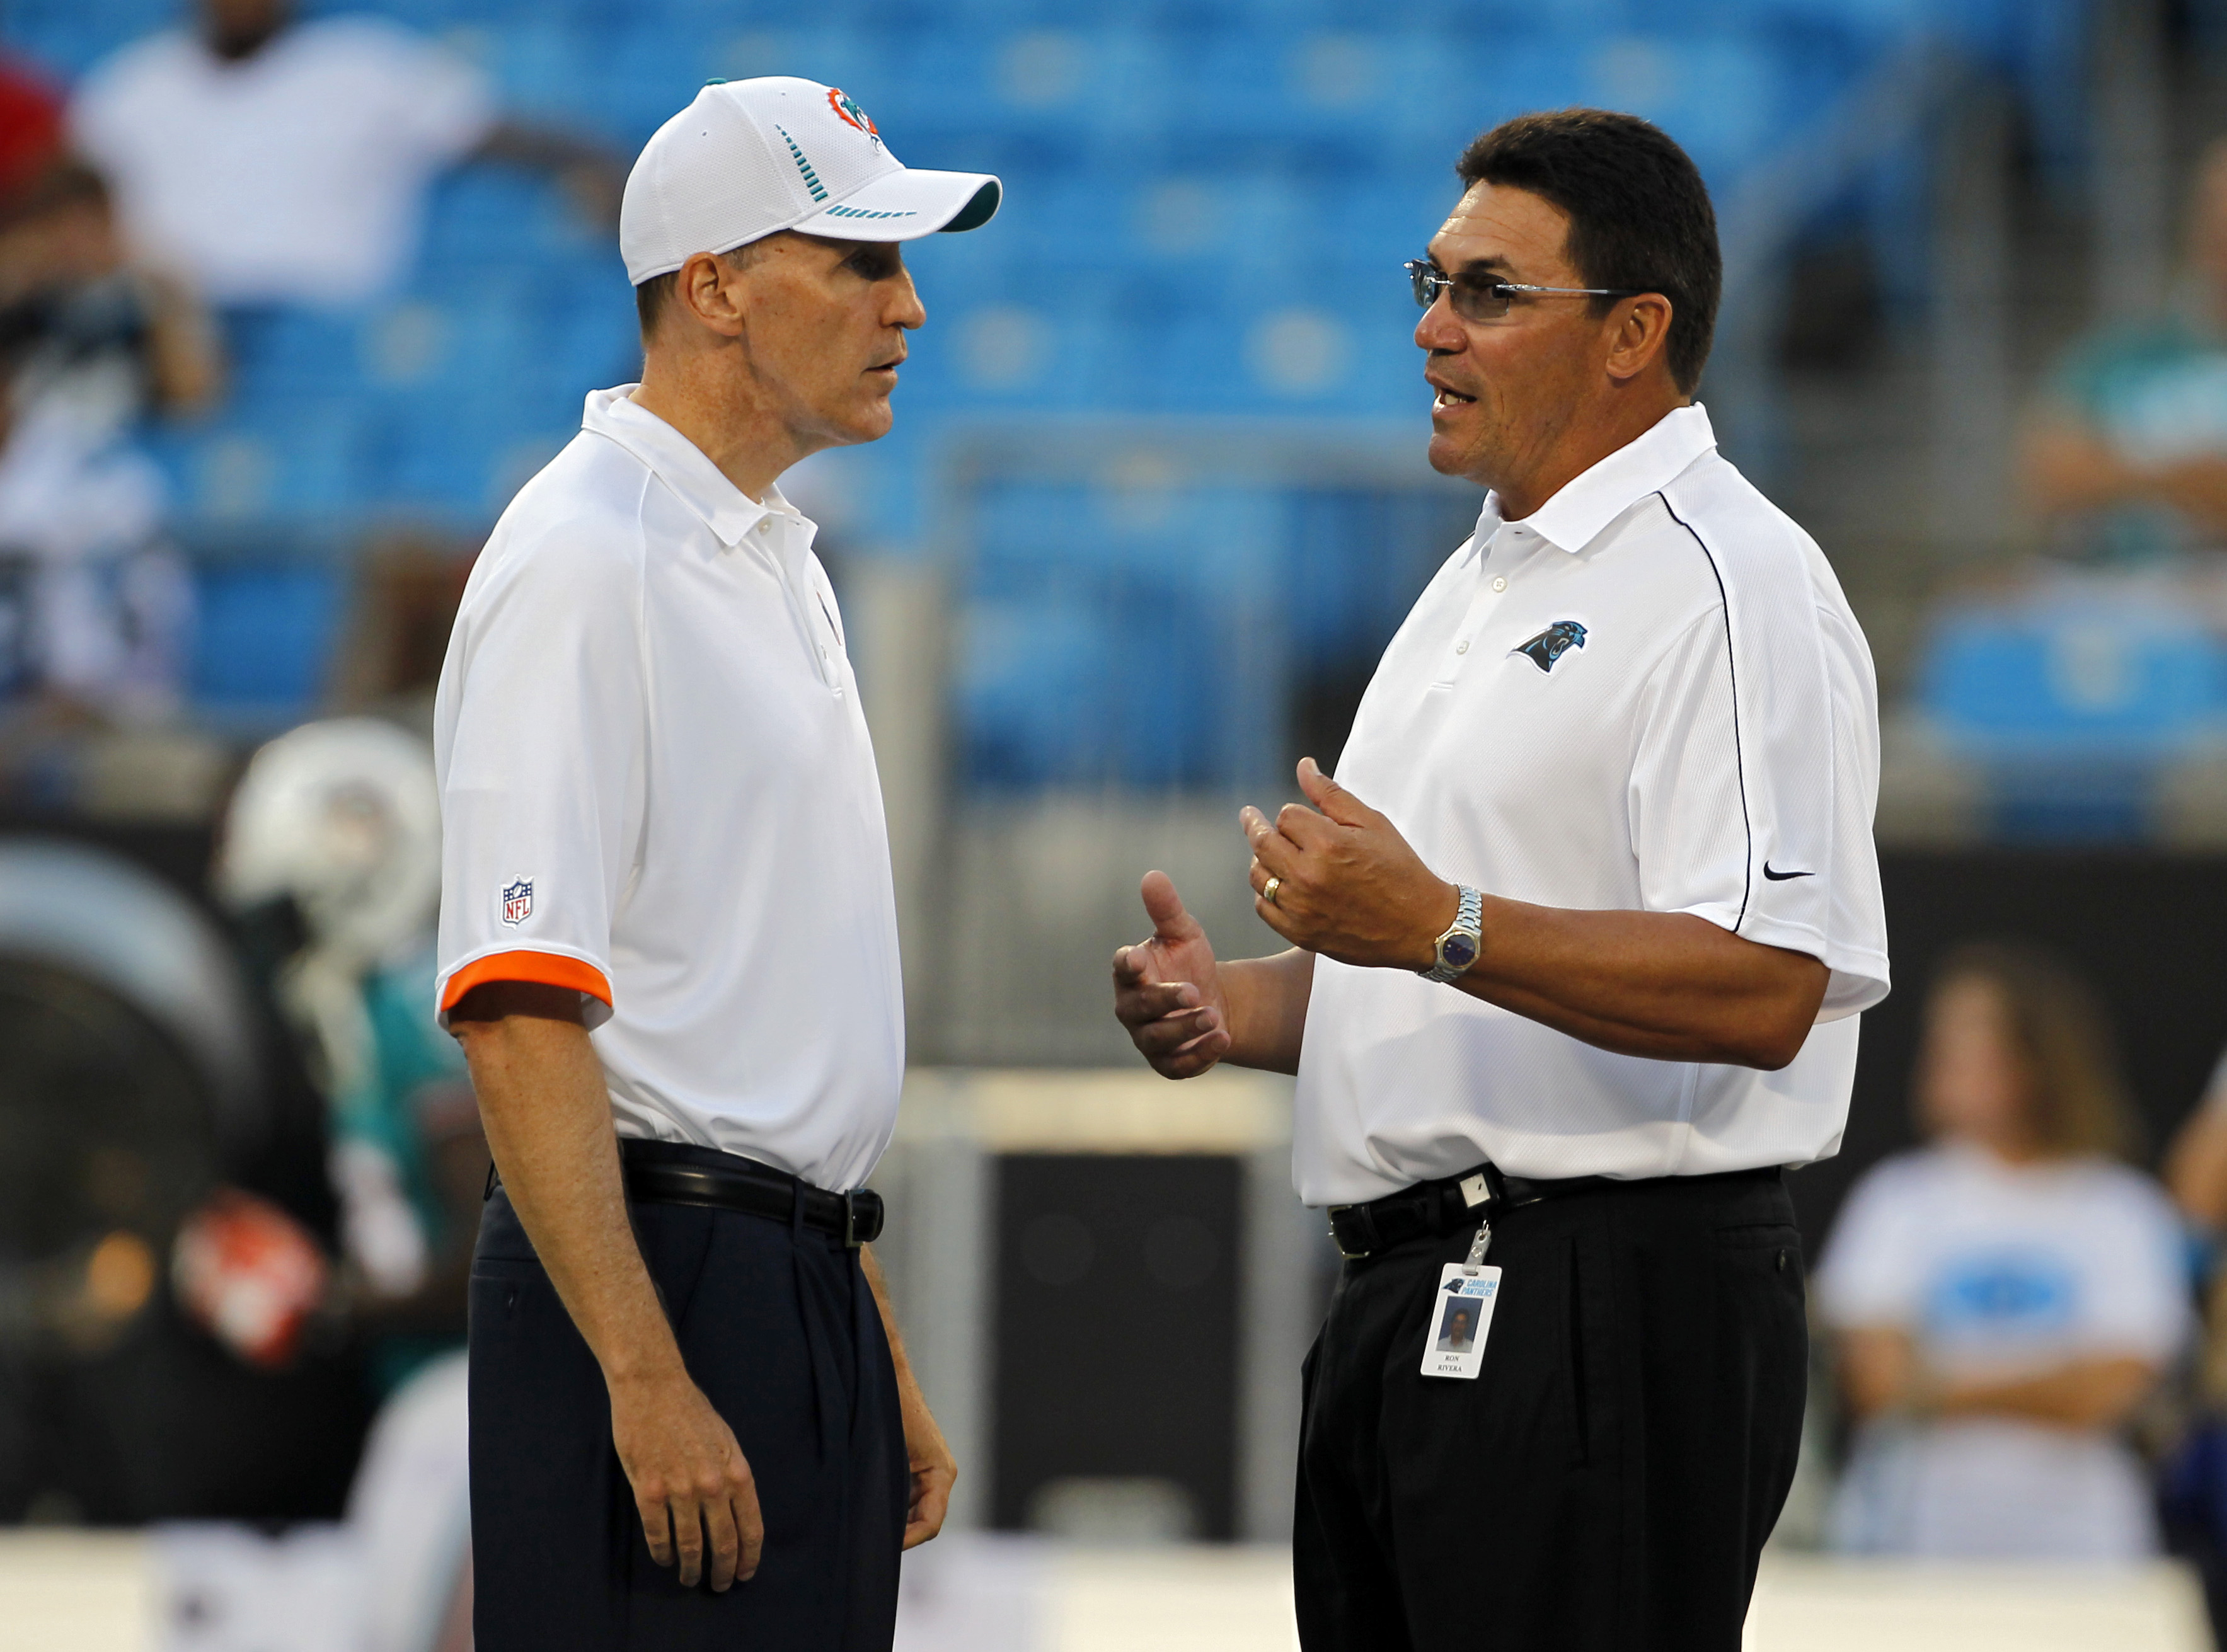 FILE - In this Aug. 17, 2012, file photo, Carolina Panthers head coach Ron Rivera, right, talks with Miami Dolphins head coach Joe Philbin, left, before a preseason NFL football game in Charlotte, N.C. Panthers coach Ron Rivera says he and Dolphins coach